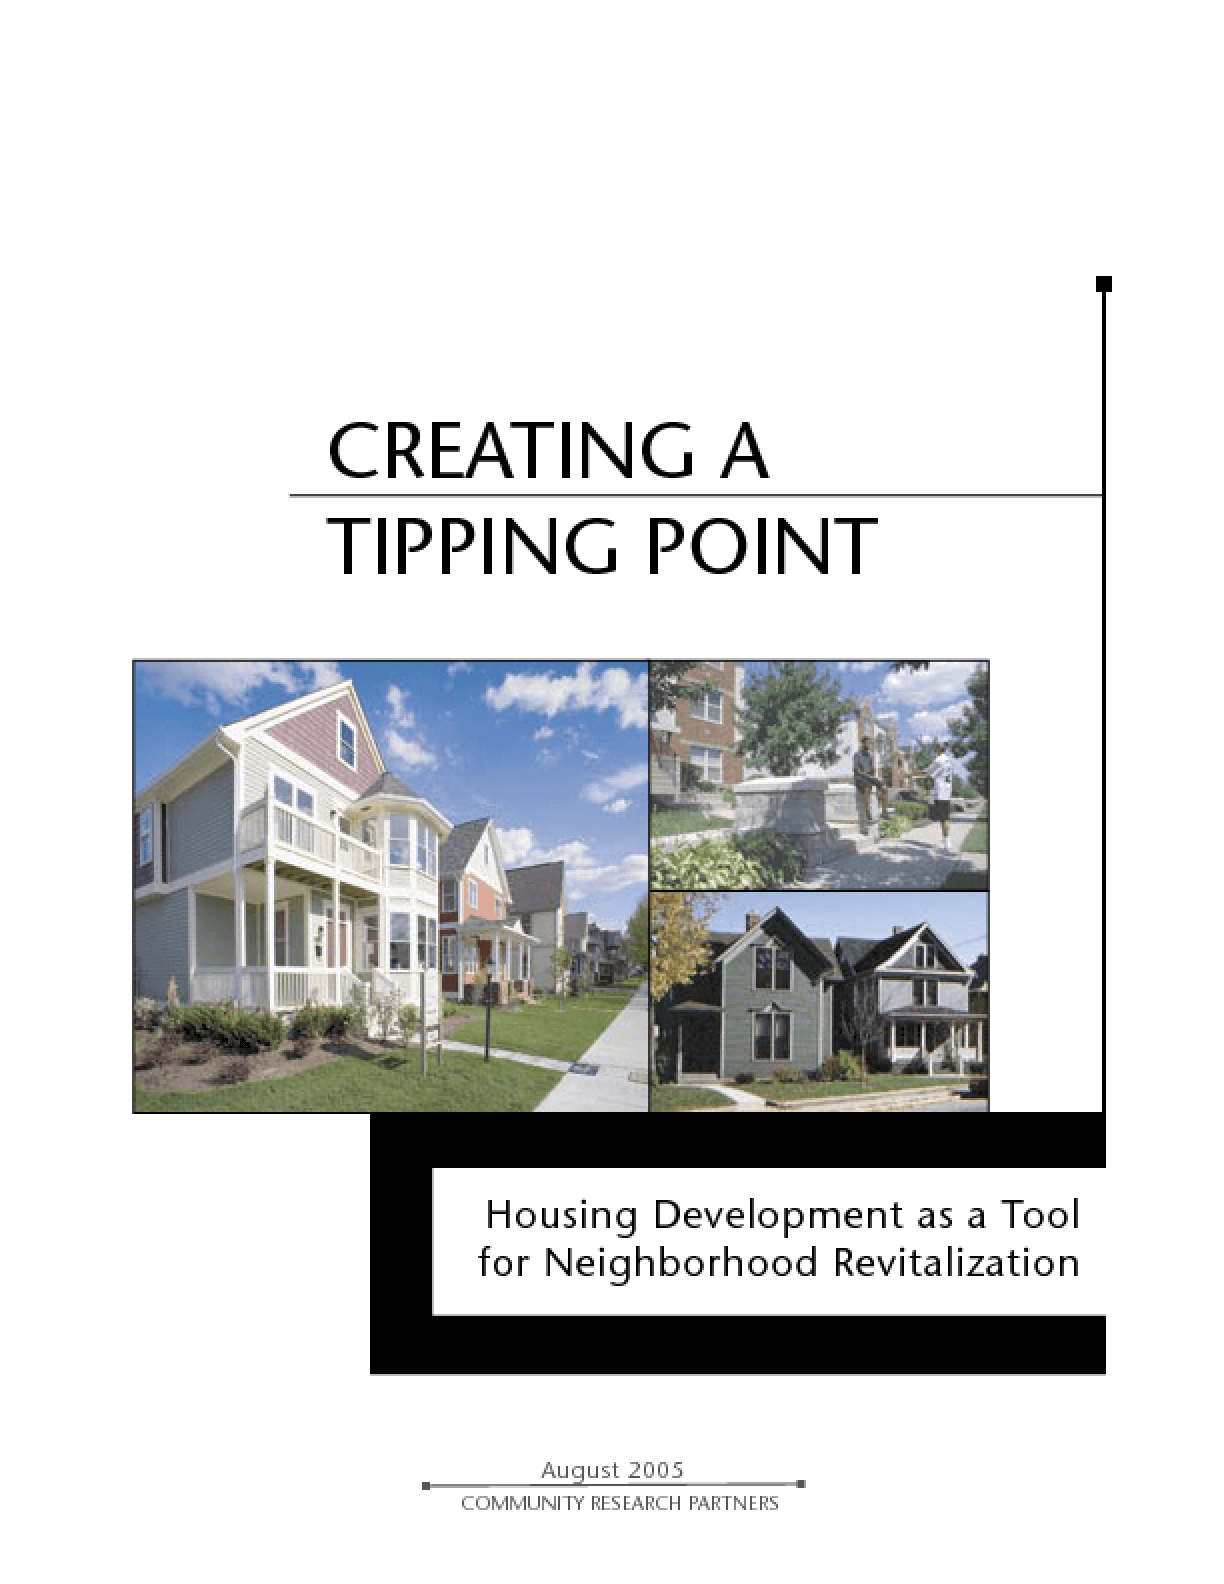 Creating a Tipping Point: Housing Development as a Tool for Neighborhood Revitalization